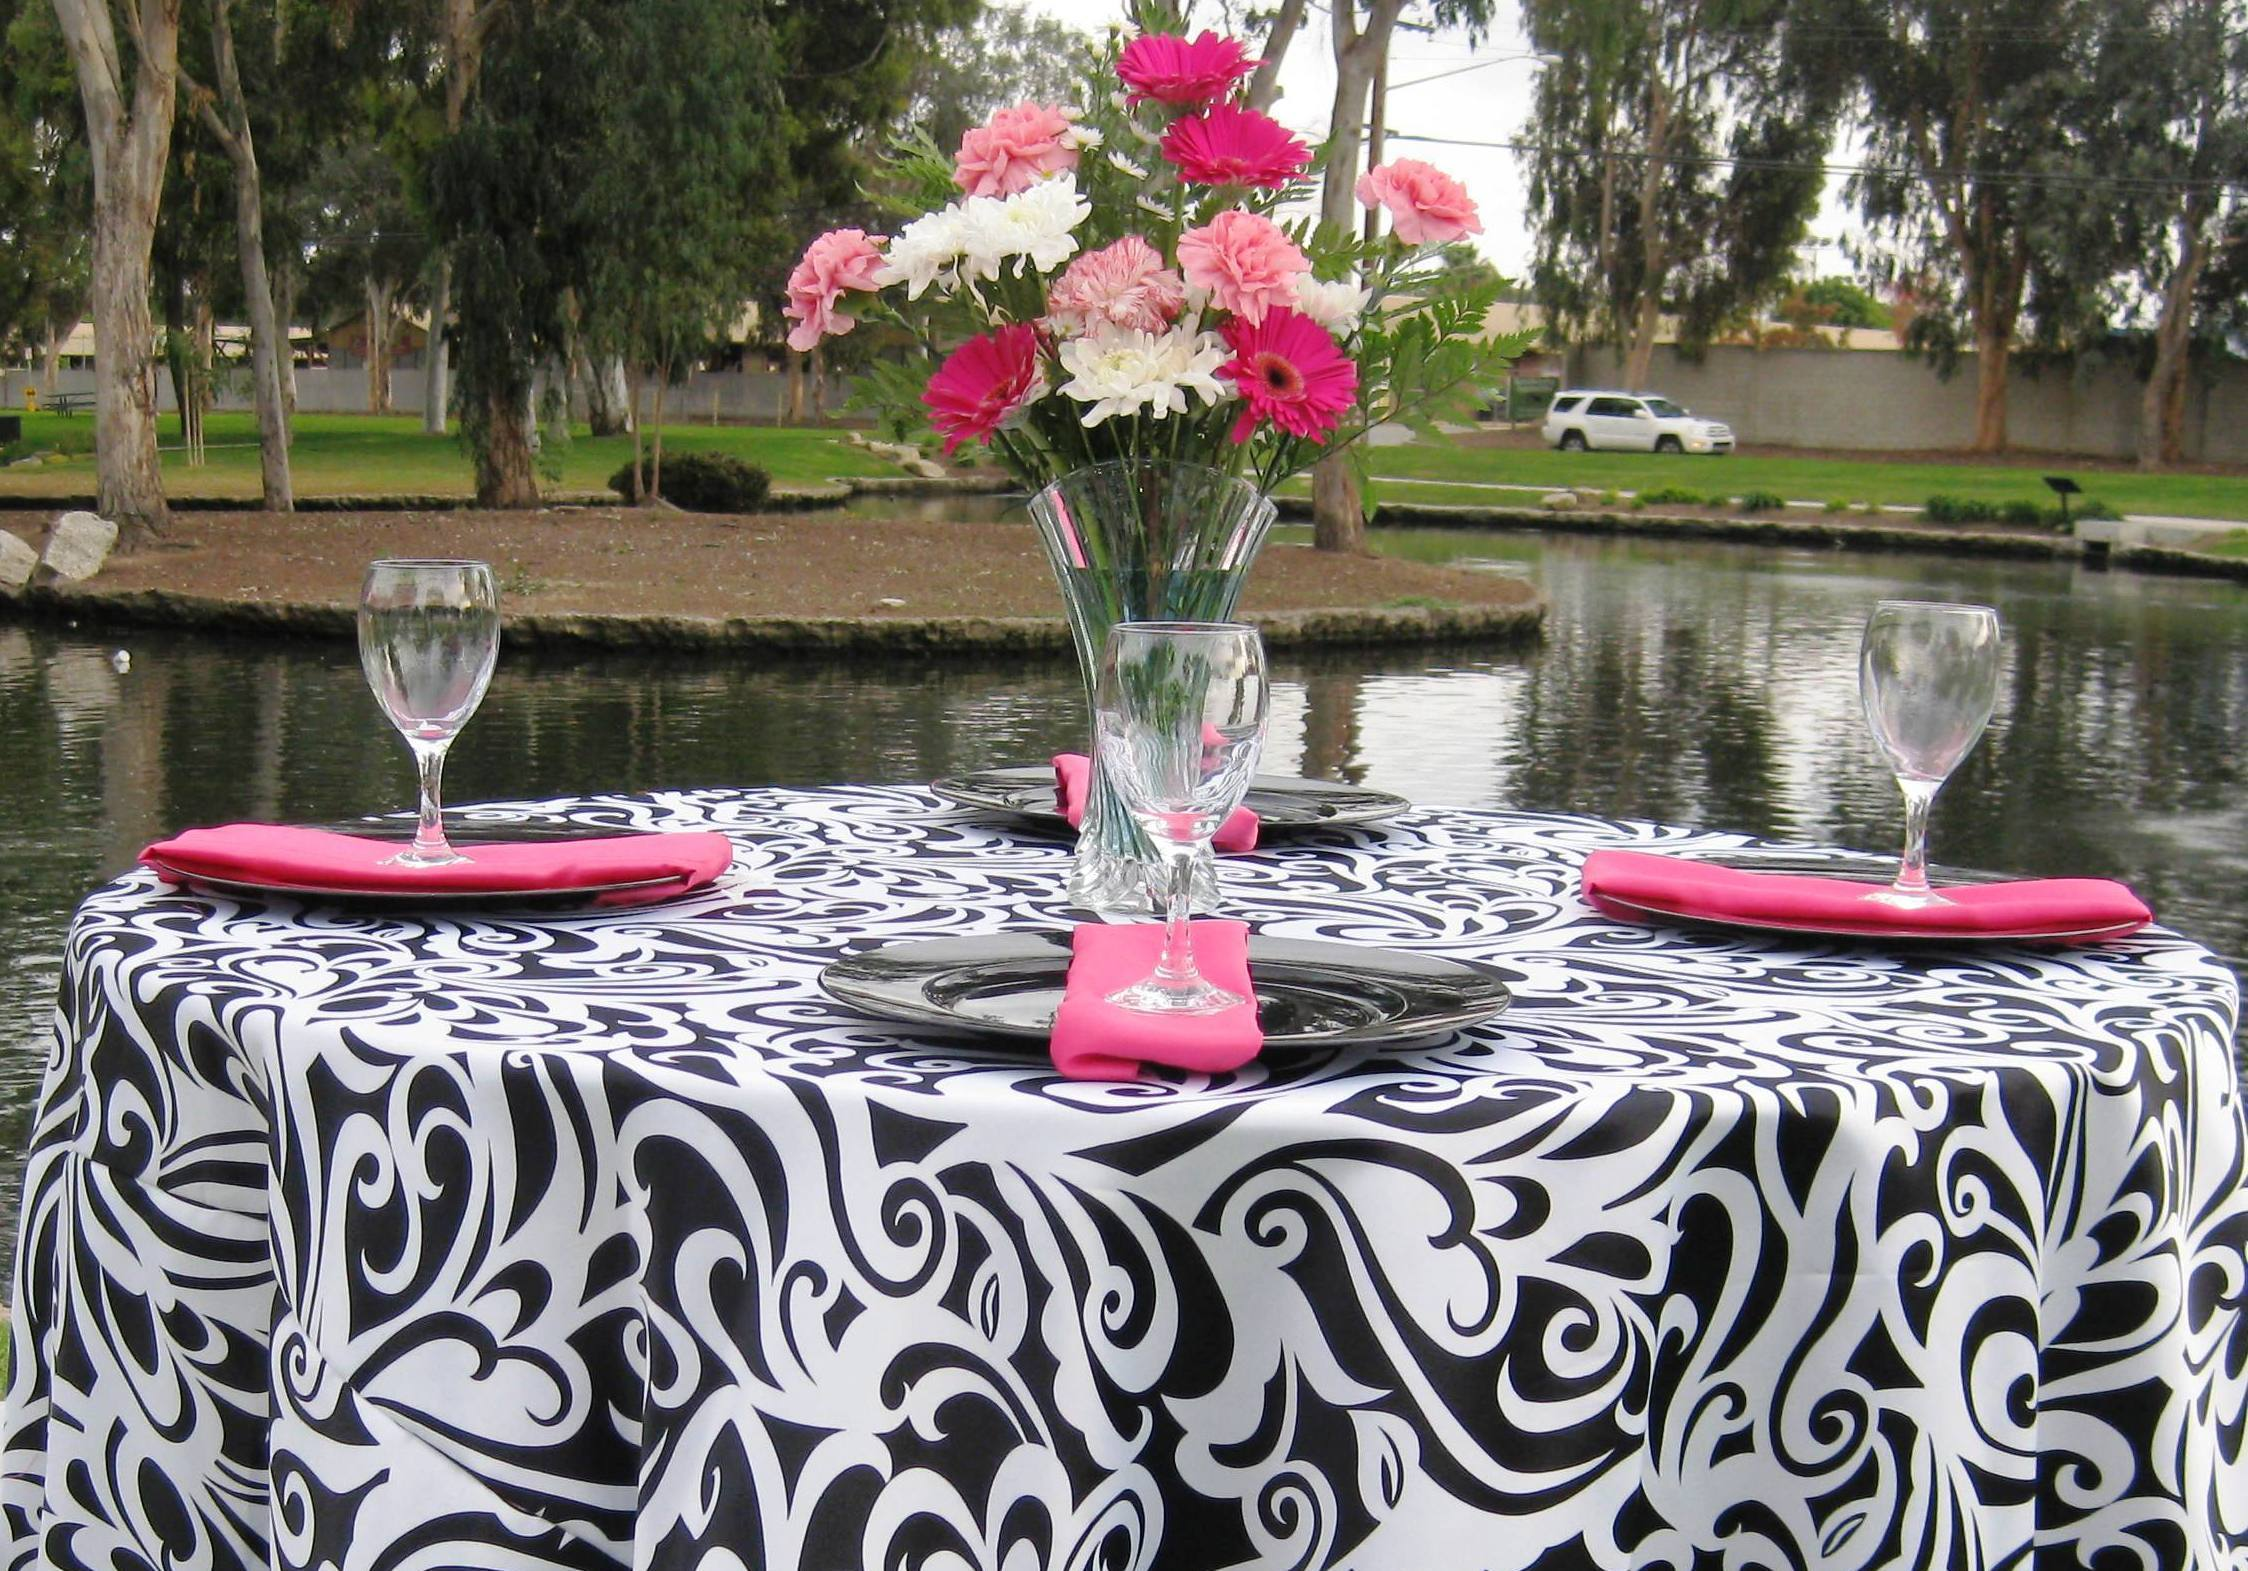 Registry, white, black, Place Settings, And, Tablecloth, Linen, Plates, Bella- couture wedding lines, chair covers 100 charger plates rental, Blackcharger